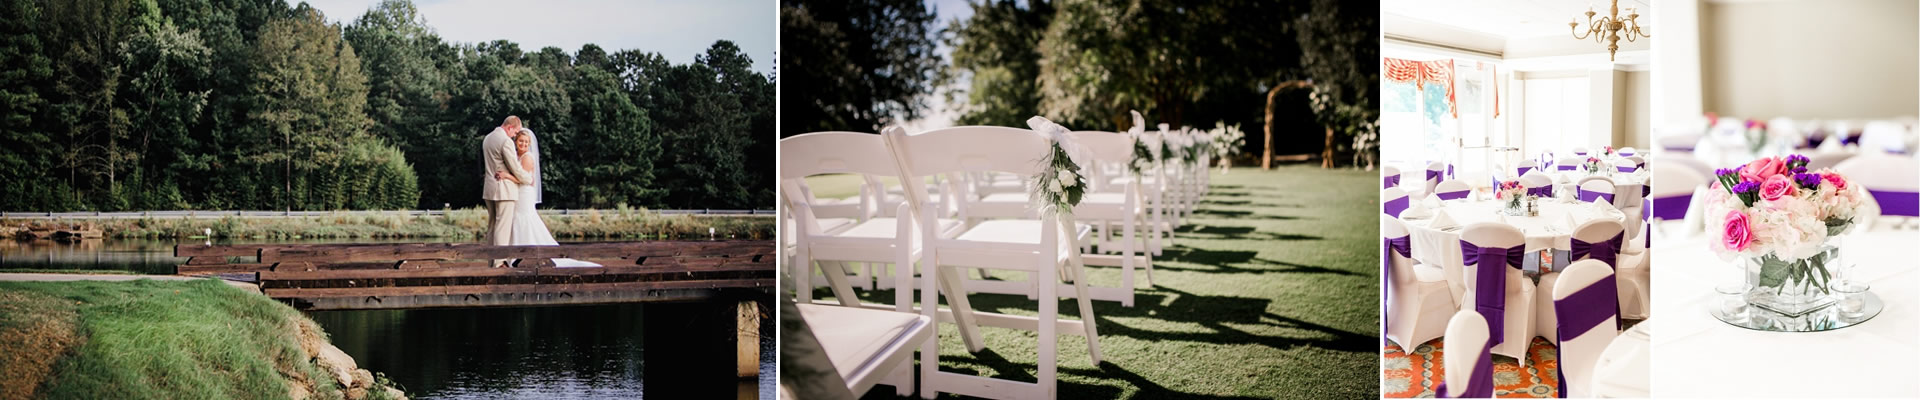 outdoor wedding venues raleigh nc